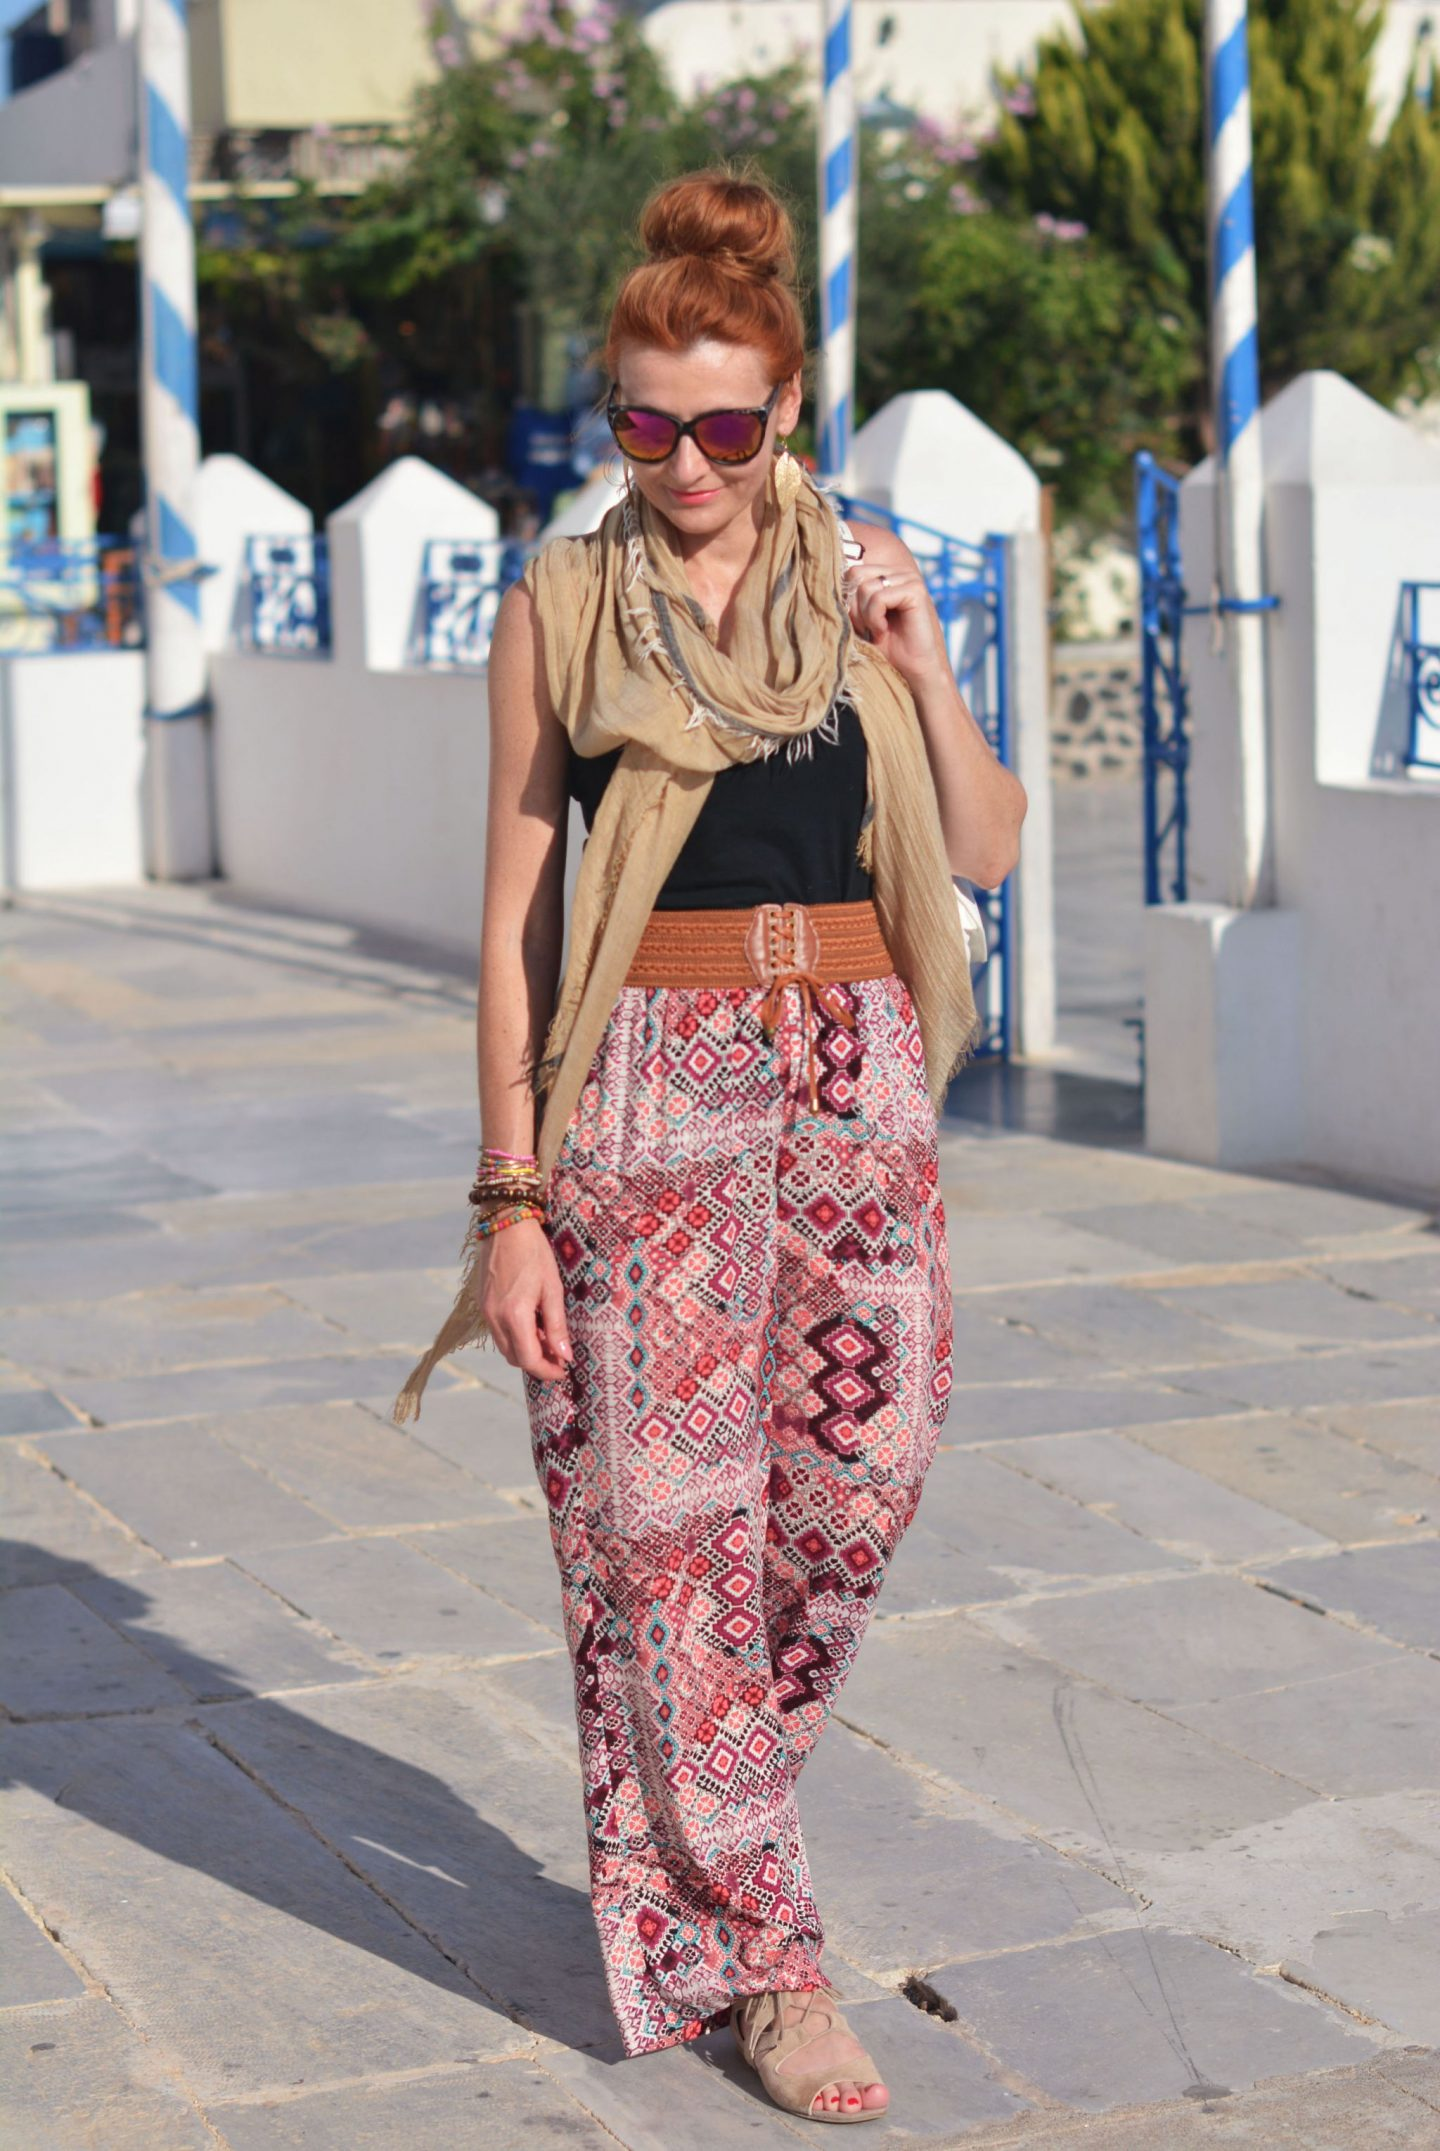 My All Time Favourite Summer Outfits: Boho dressing | Not Dressed As Lamb